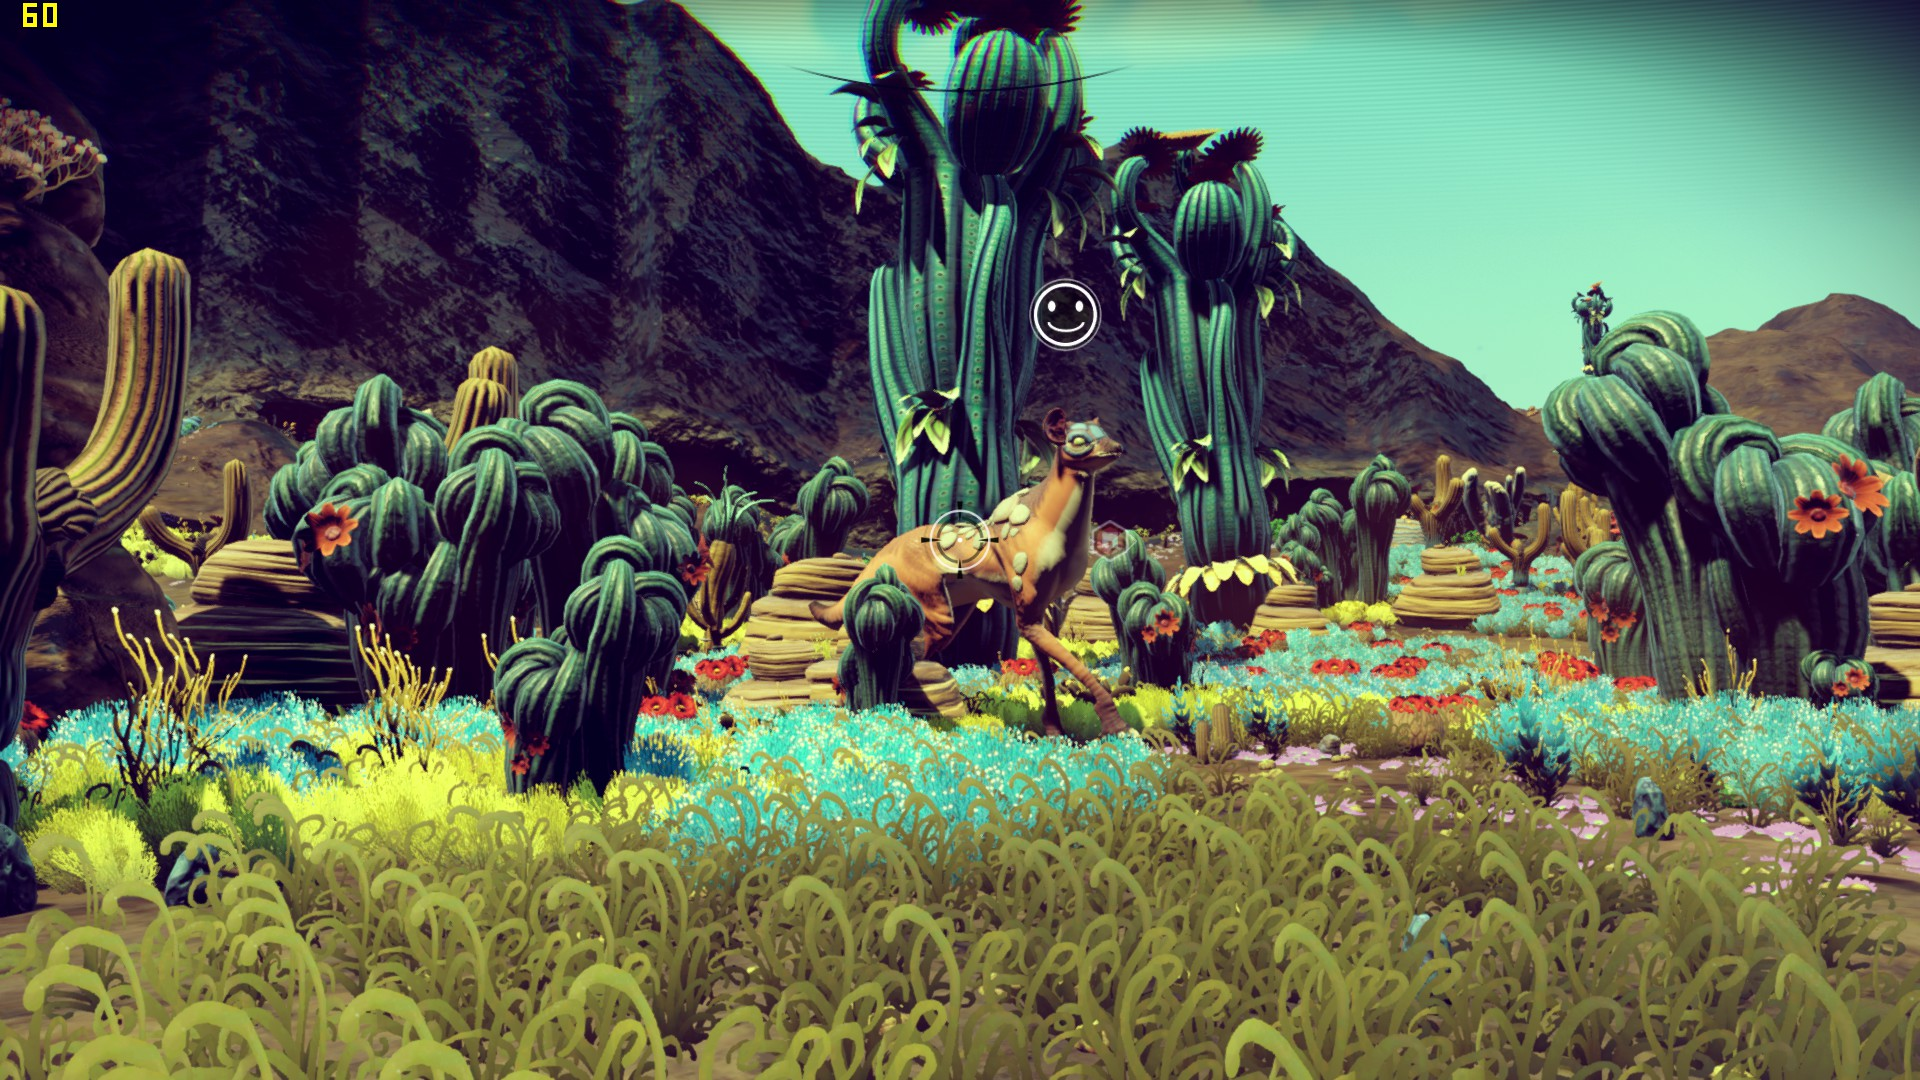 You will stumble across all kinds of planets in No Man's Sky.